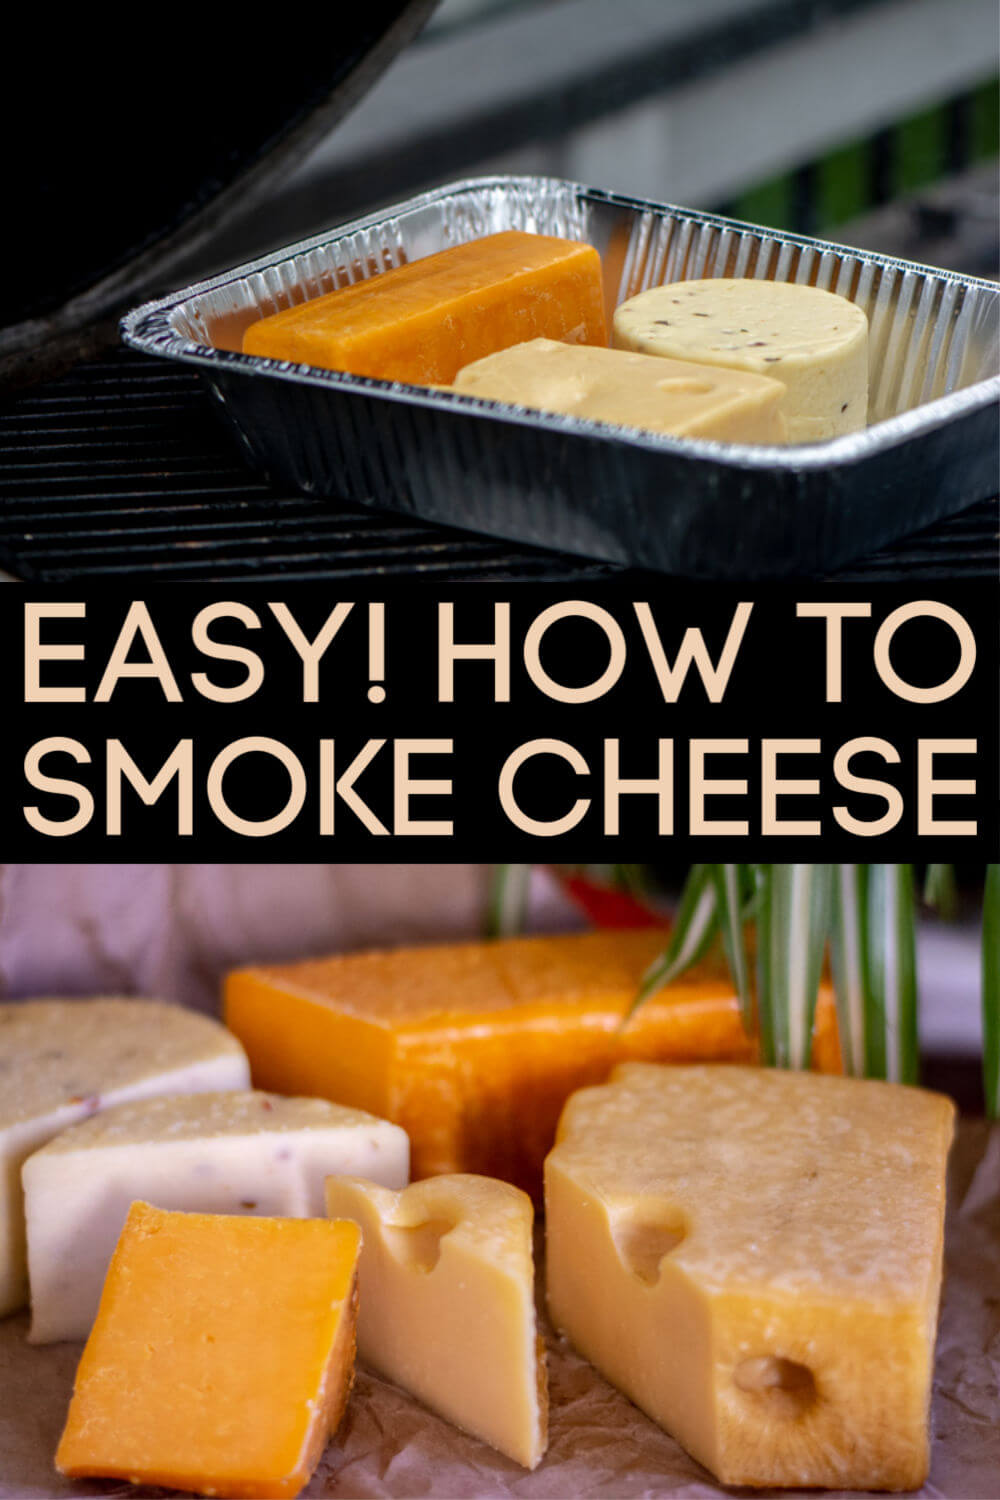 Learn the easy steps to smoke cheese on the grill. After smoking your own cheese, you won't ever want to buy store brands again! #smoke #smokedcheese #cheese #BGE #BigGreenEgg #Grill #smoker #cheddar #swiss #pepperjack